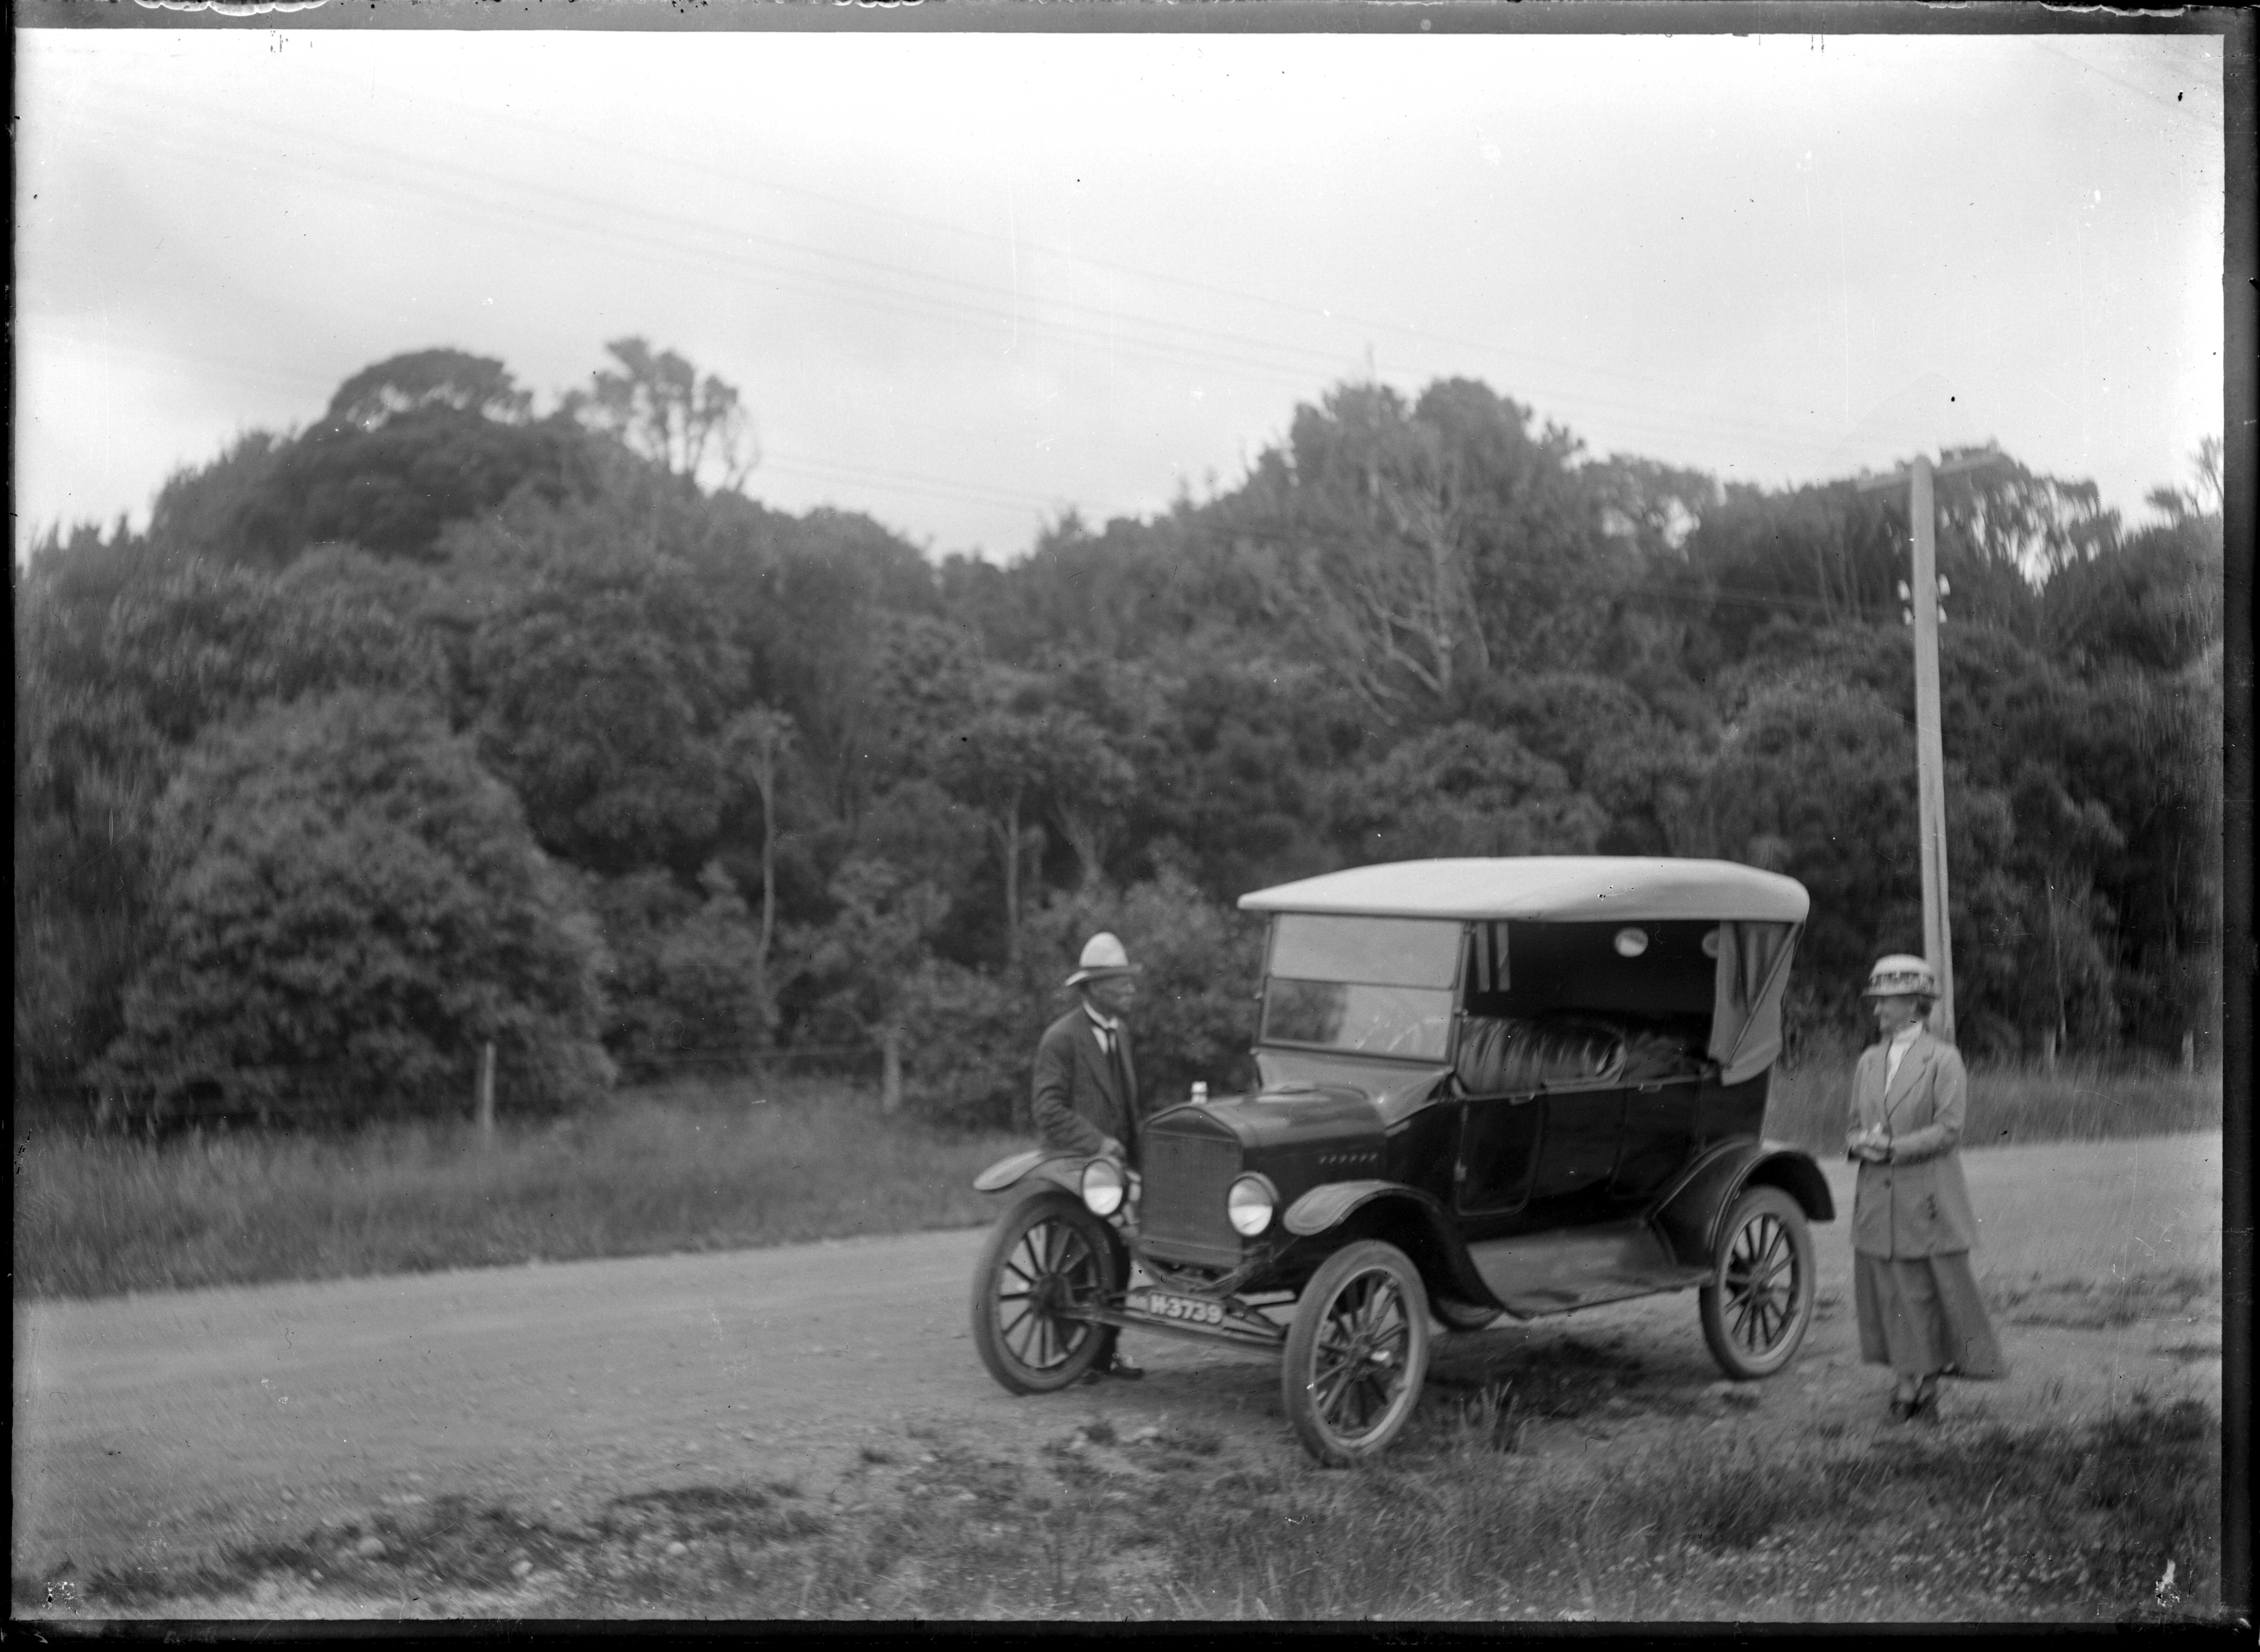 beside a car on a road in a hilly, bushy area ATLIB 324339.png English: Unidentified man and woman standing beside a 1923 Ford Model T Touring Car, on a